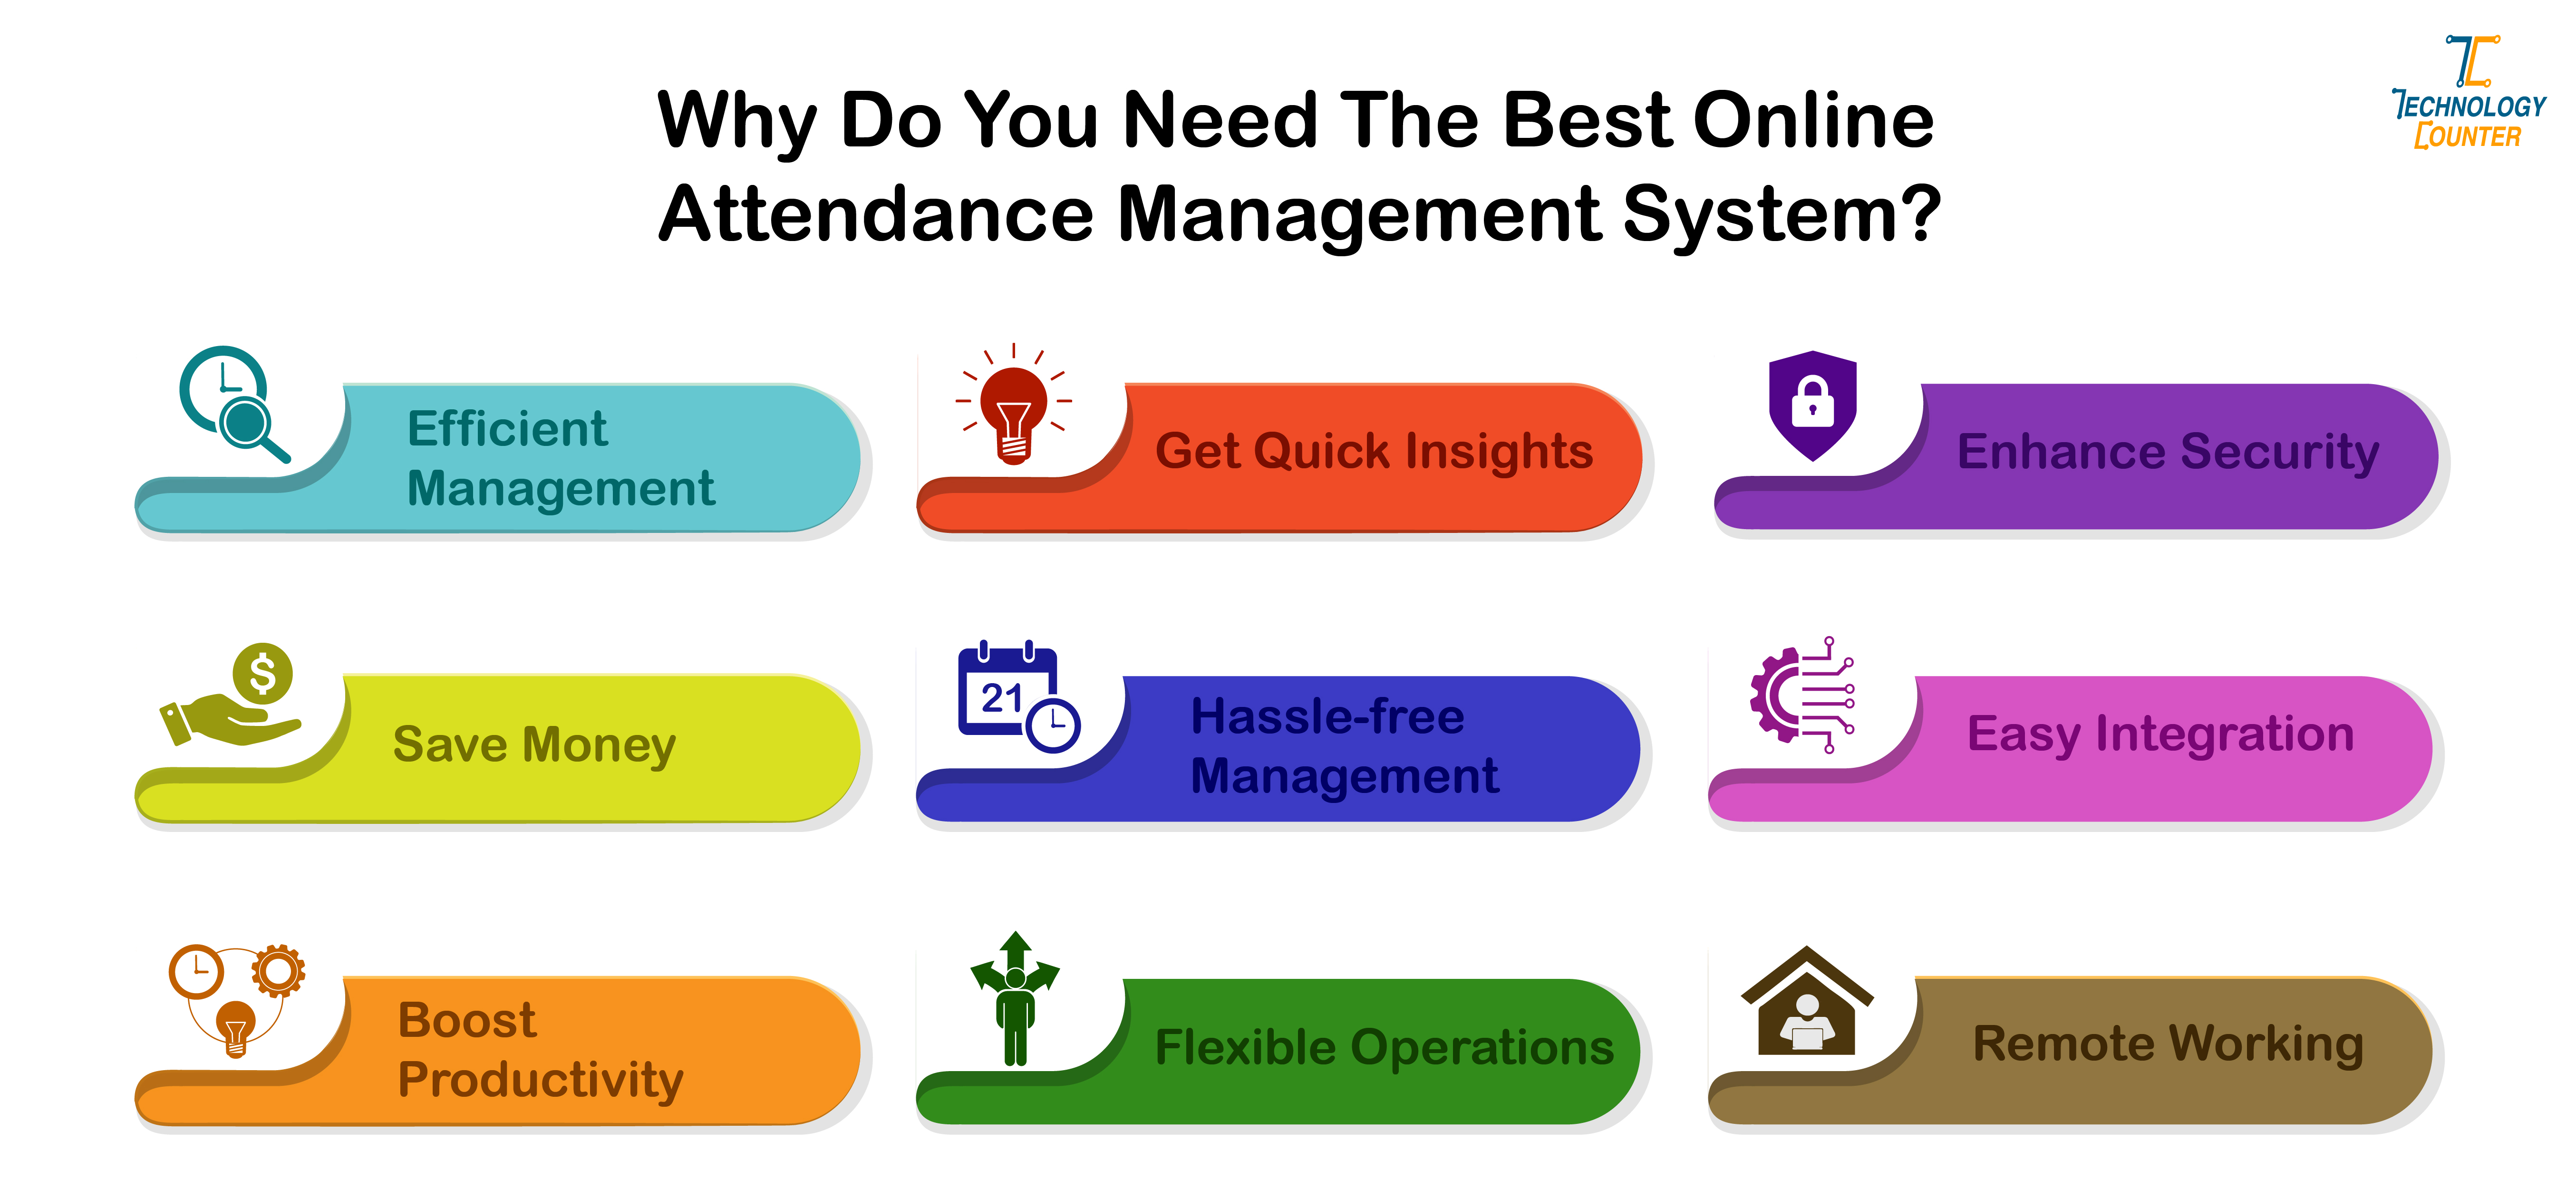 Need of the best Online Attendance Management System